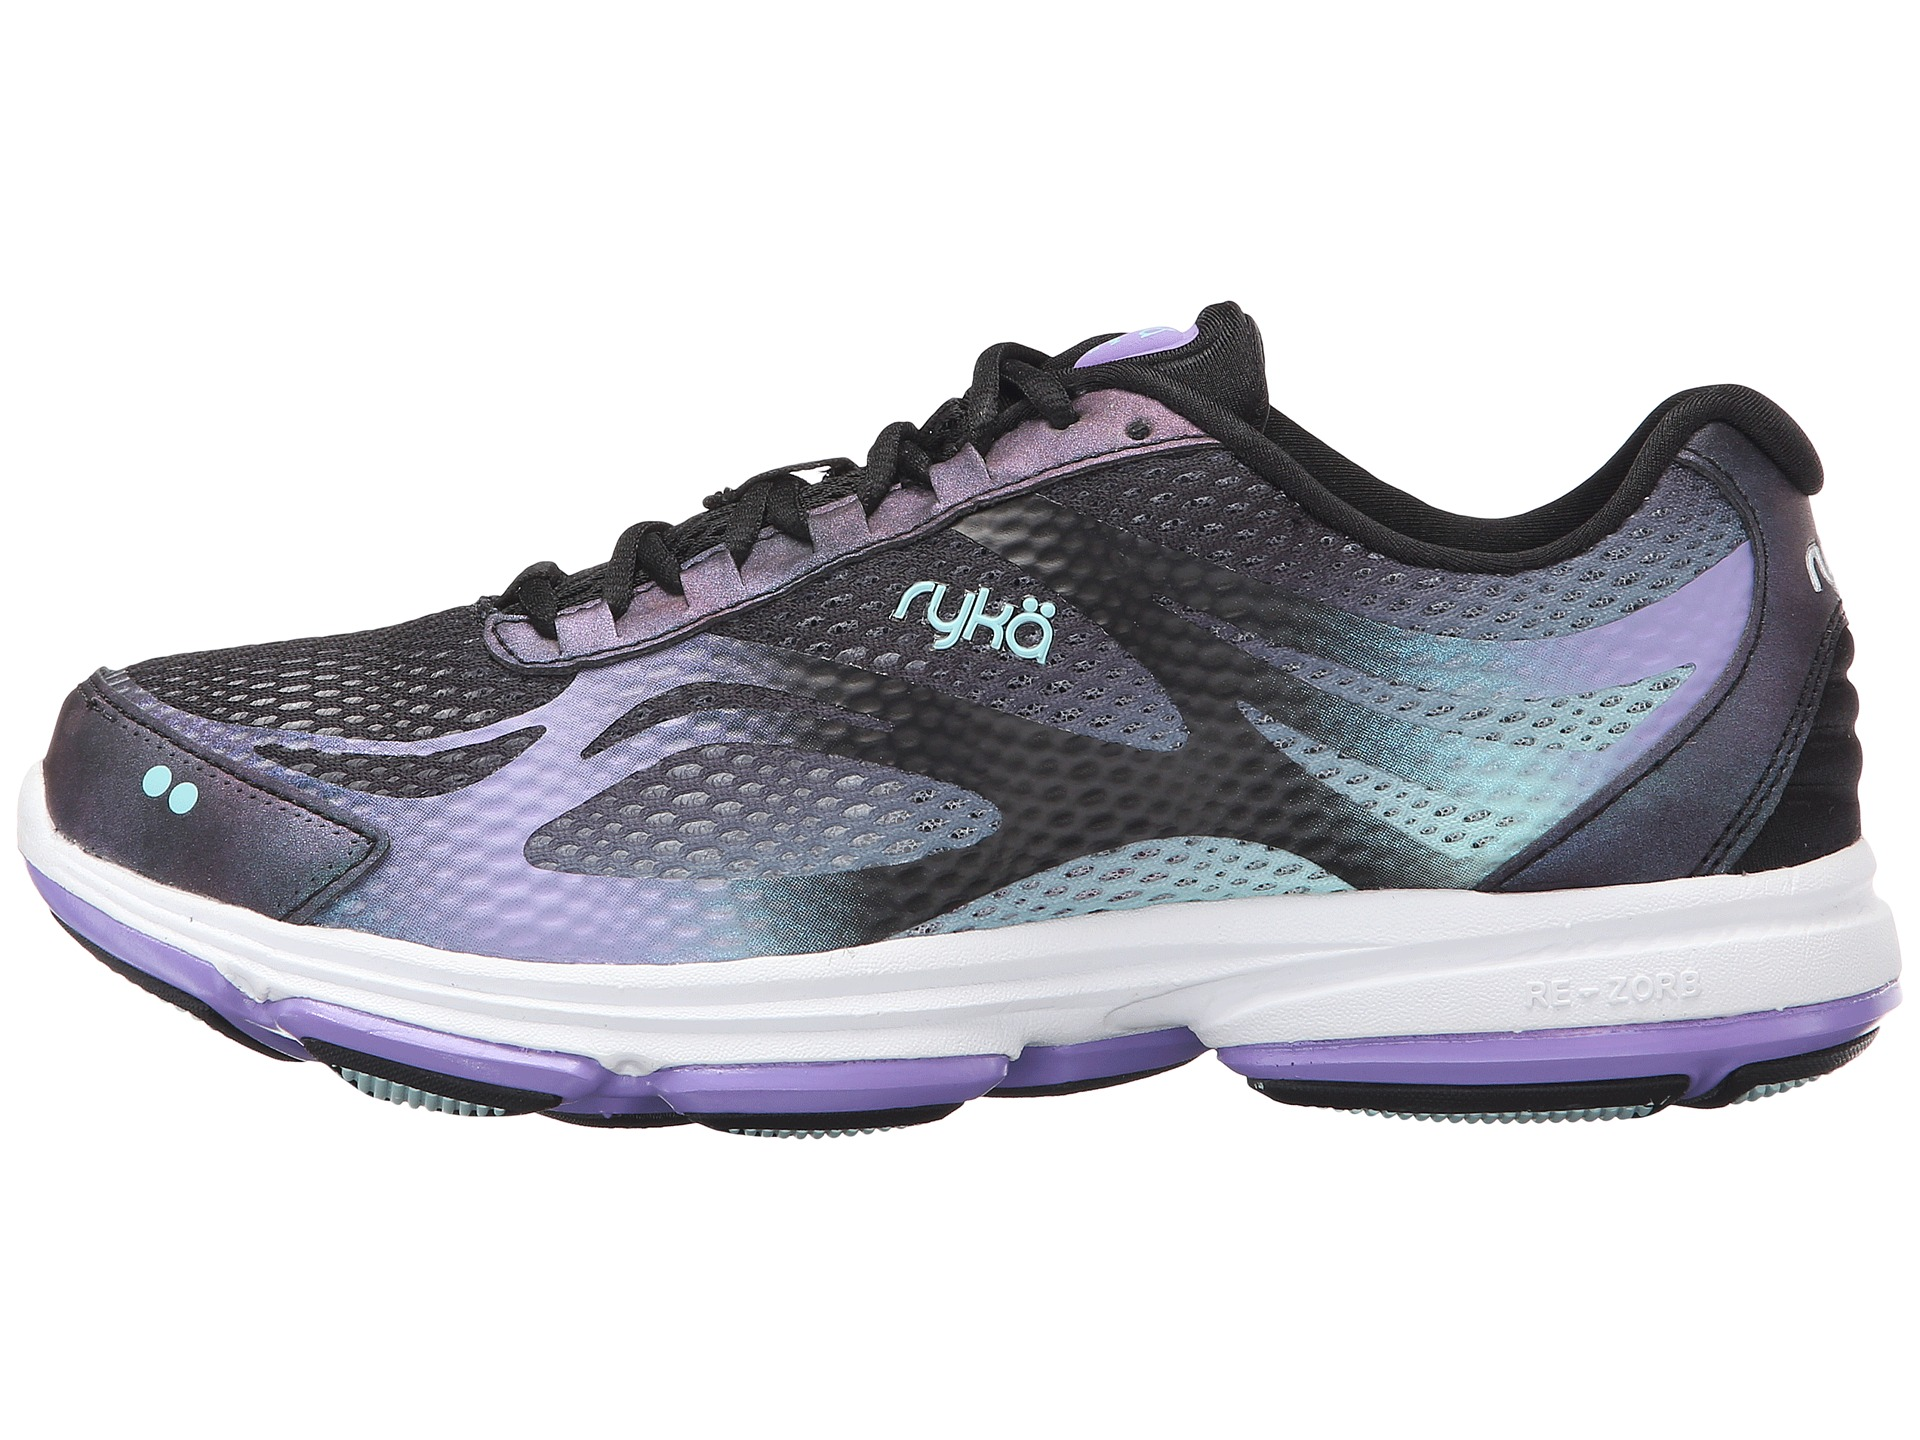 Ryka Devotion Plus Walking Shoe